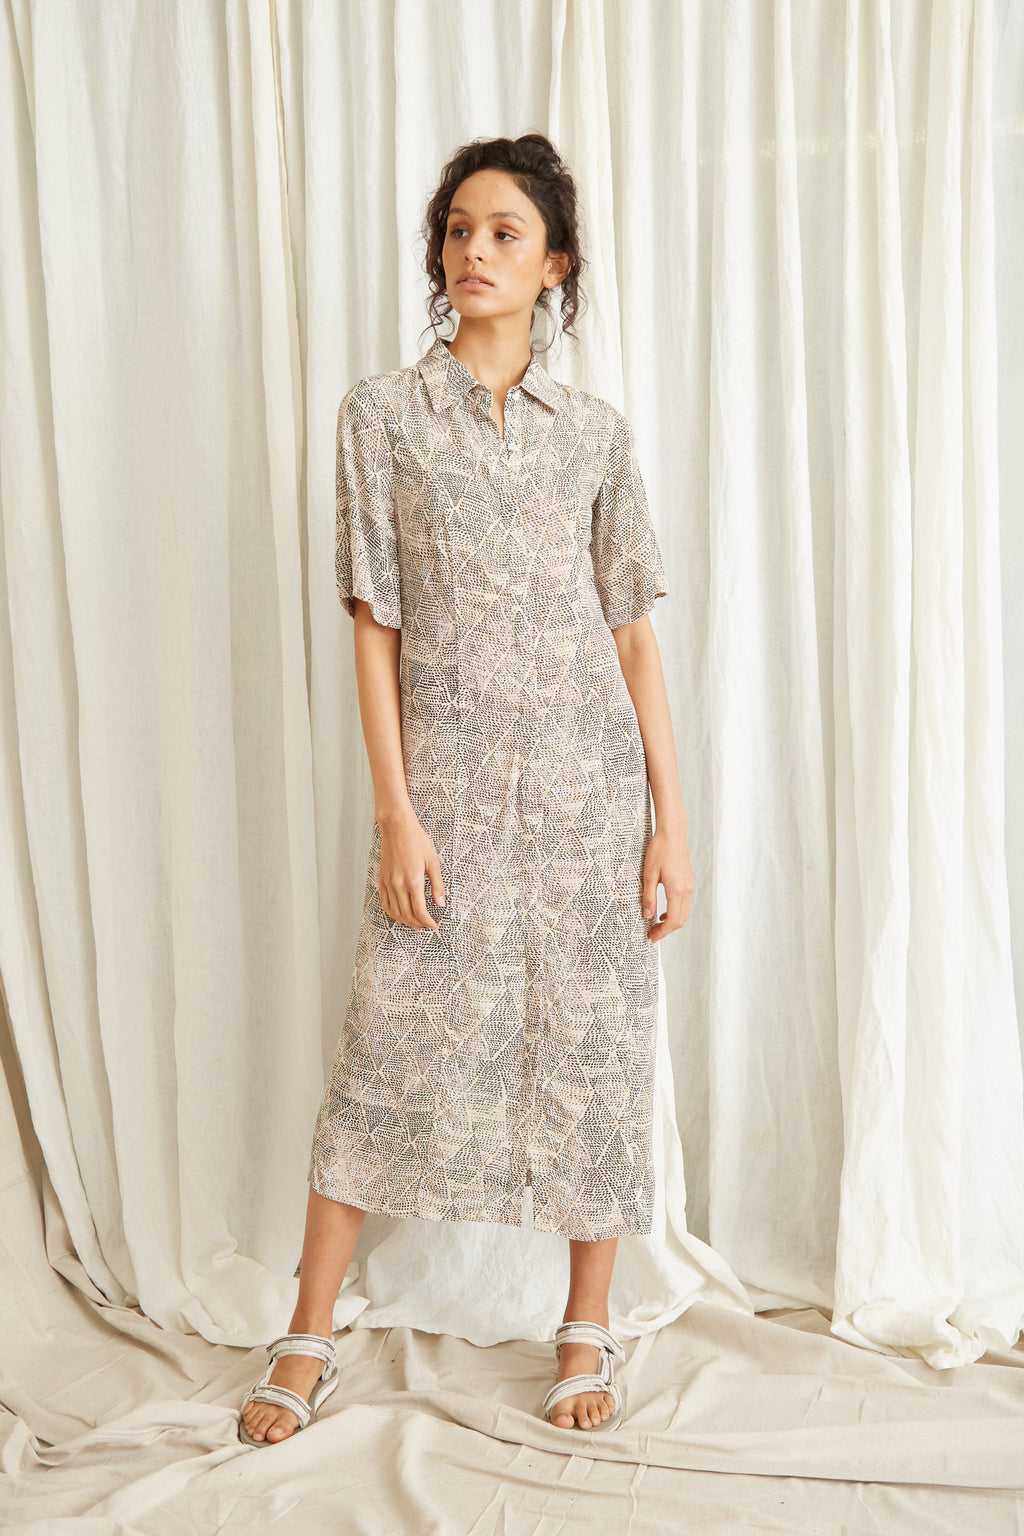 Third Form Intrepid Maxi Shirt Dress - Marrakech